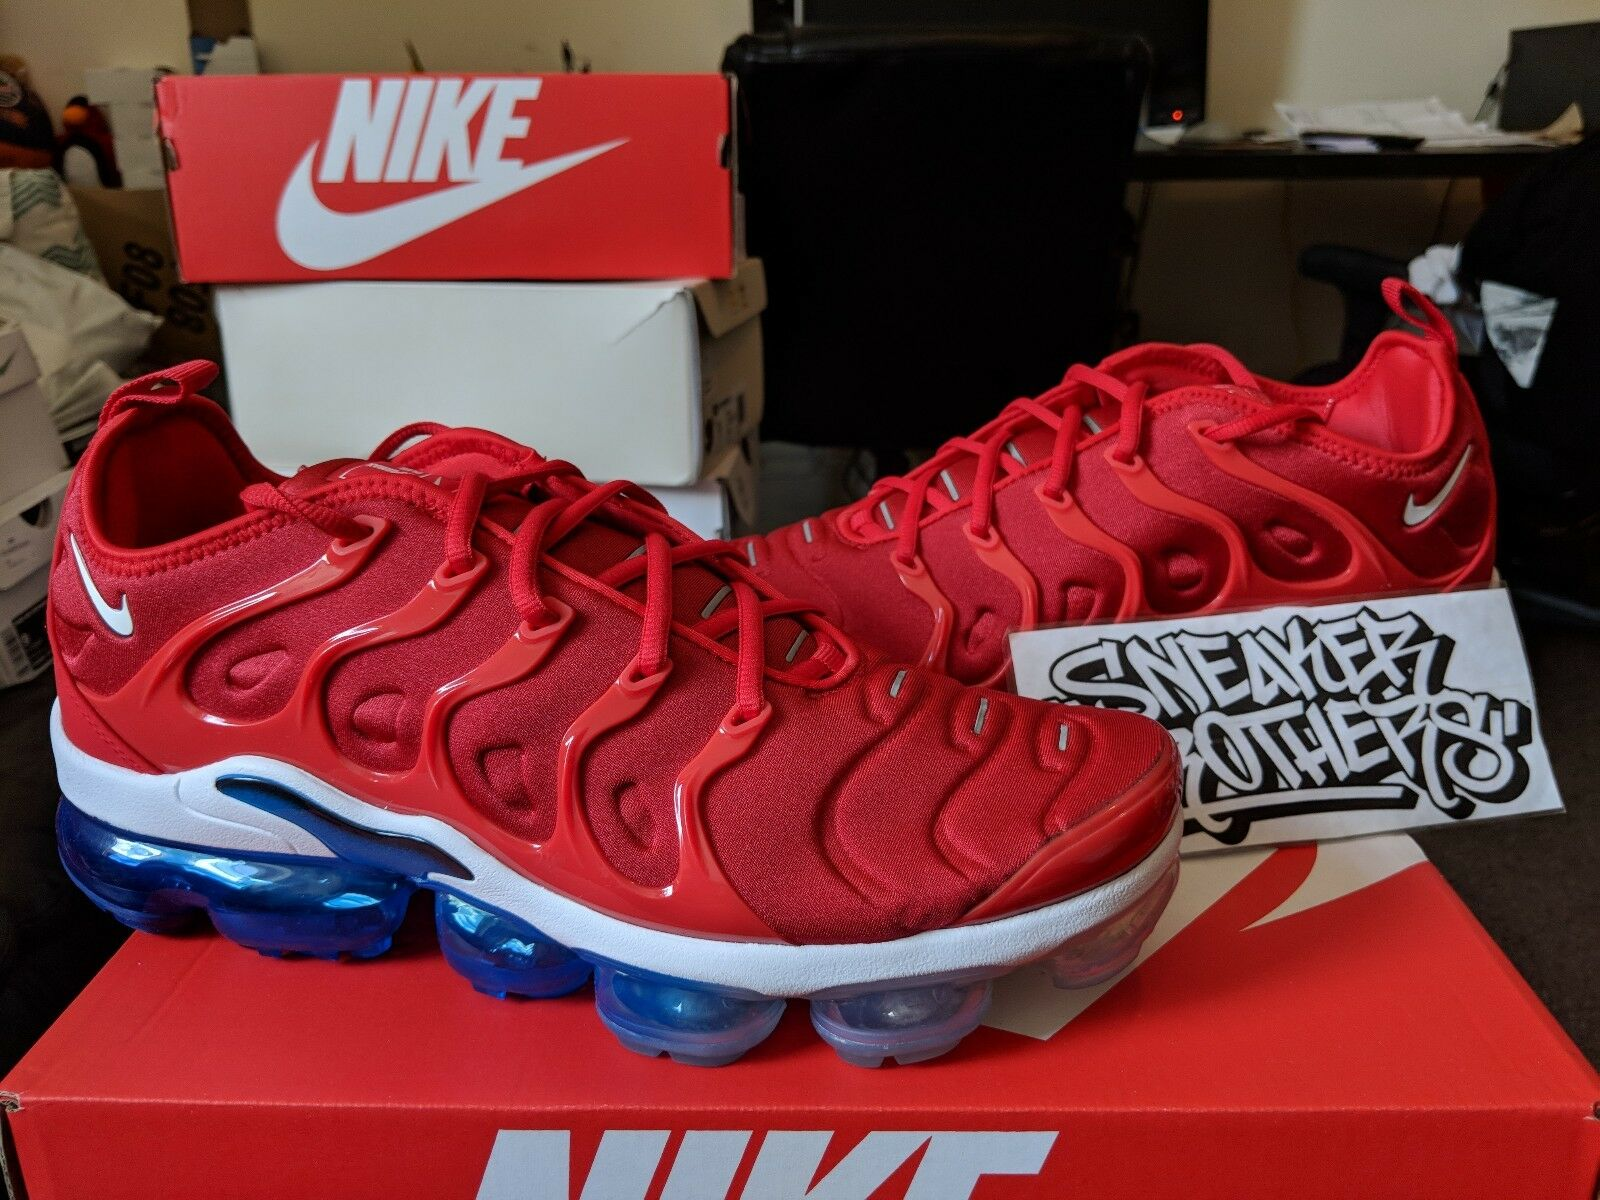 Nike Air Vapormax Plus USA University Red White Photo Blue Black July 924453-601 Special limited time